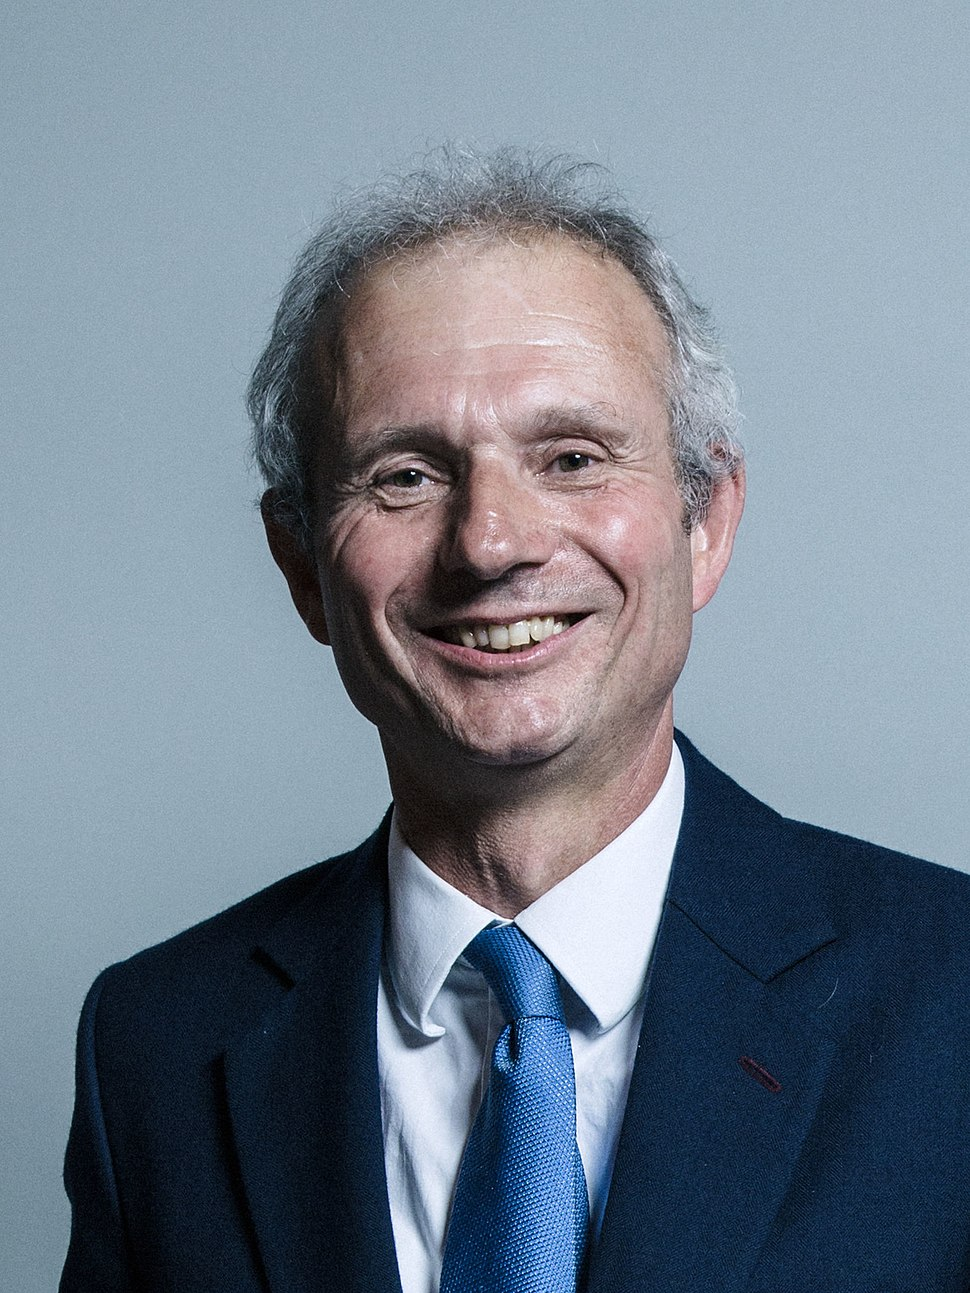 Official portrait of Mr David Lidington crop 2